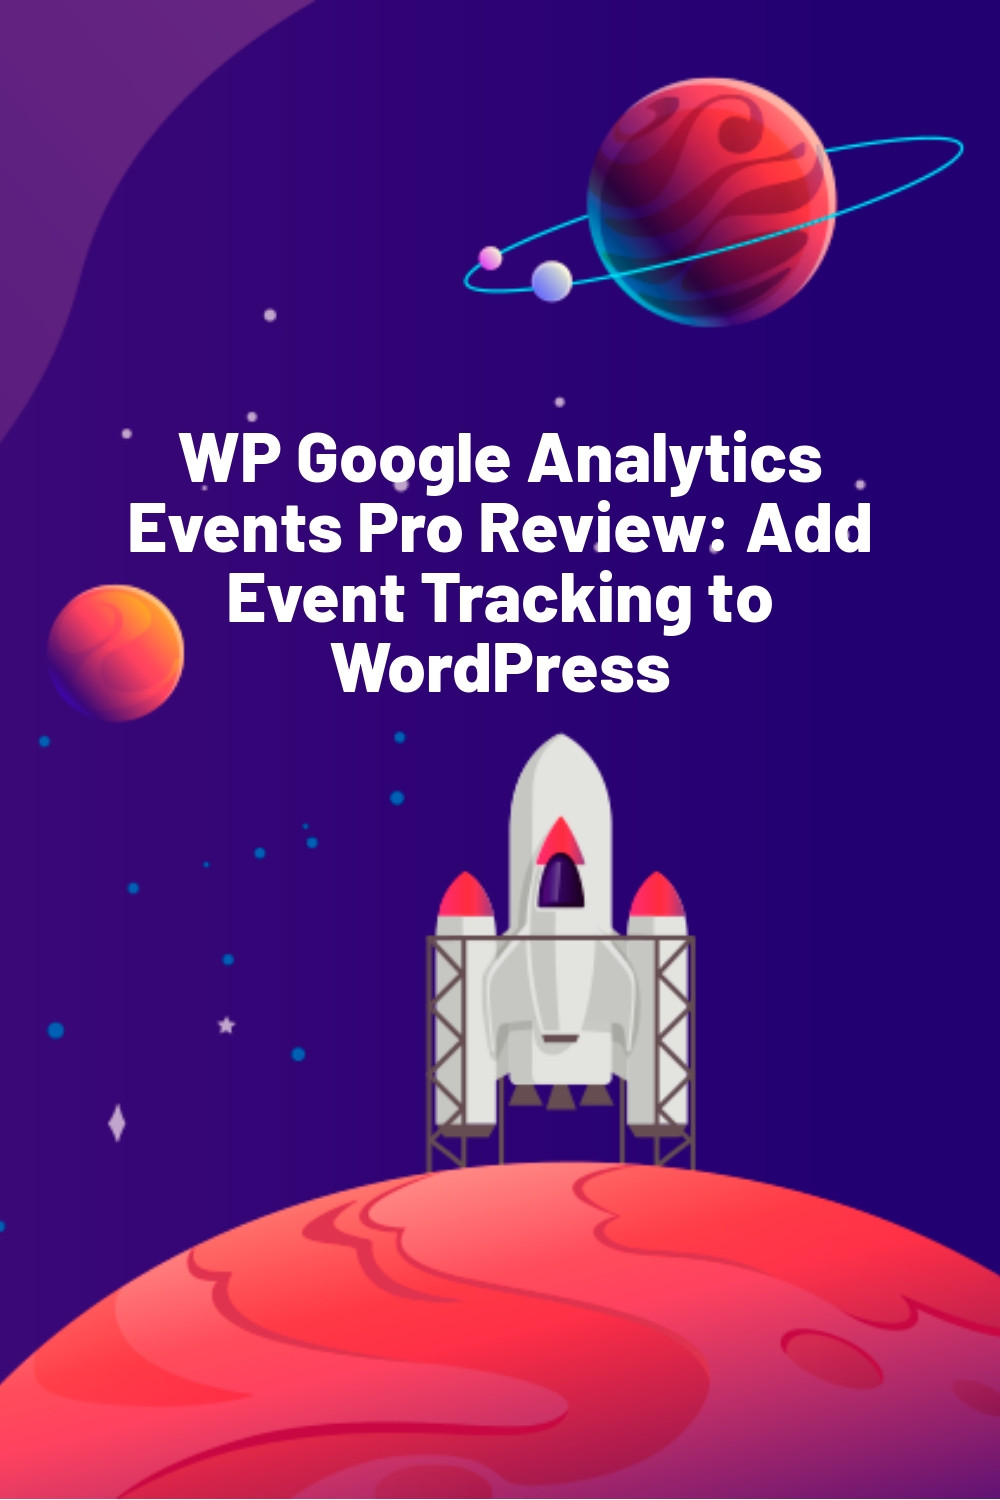 WP Google Analytics Events Pro Review: Add Event Tracking to WordPress